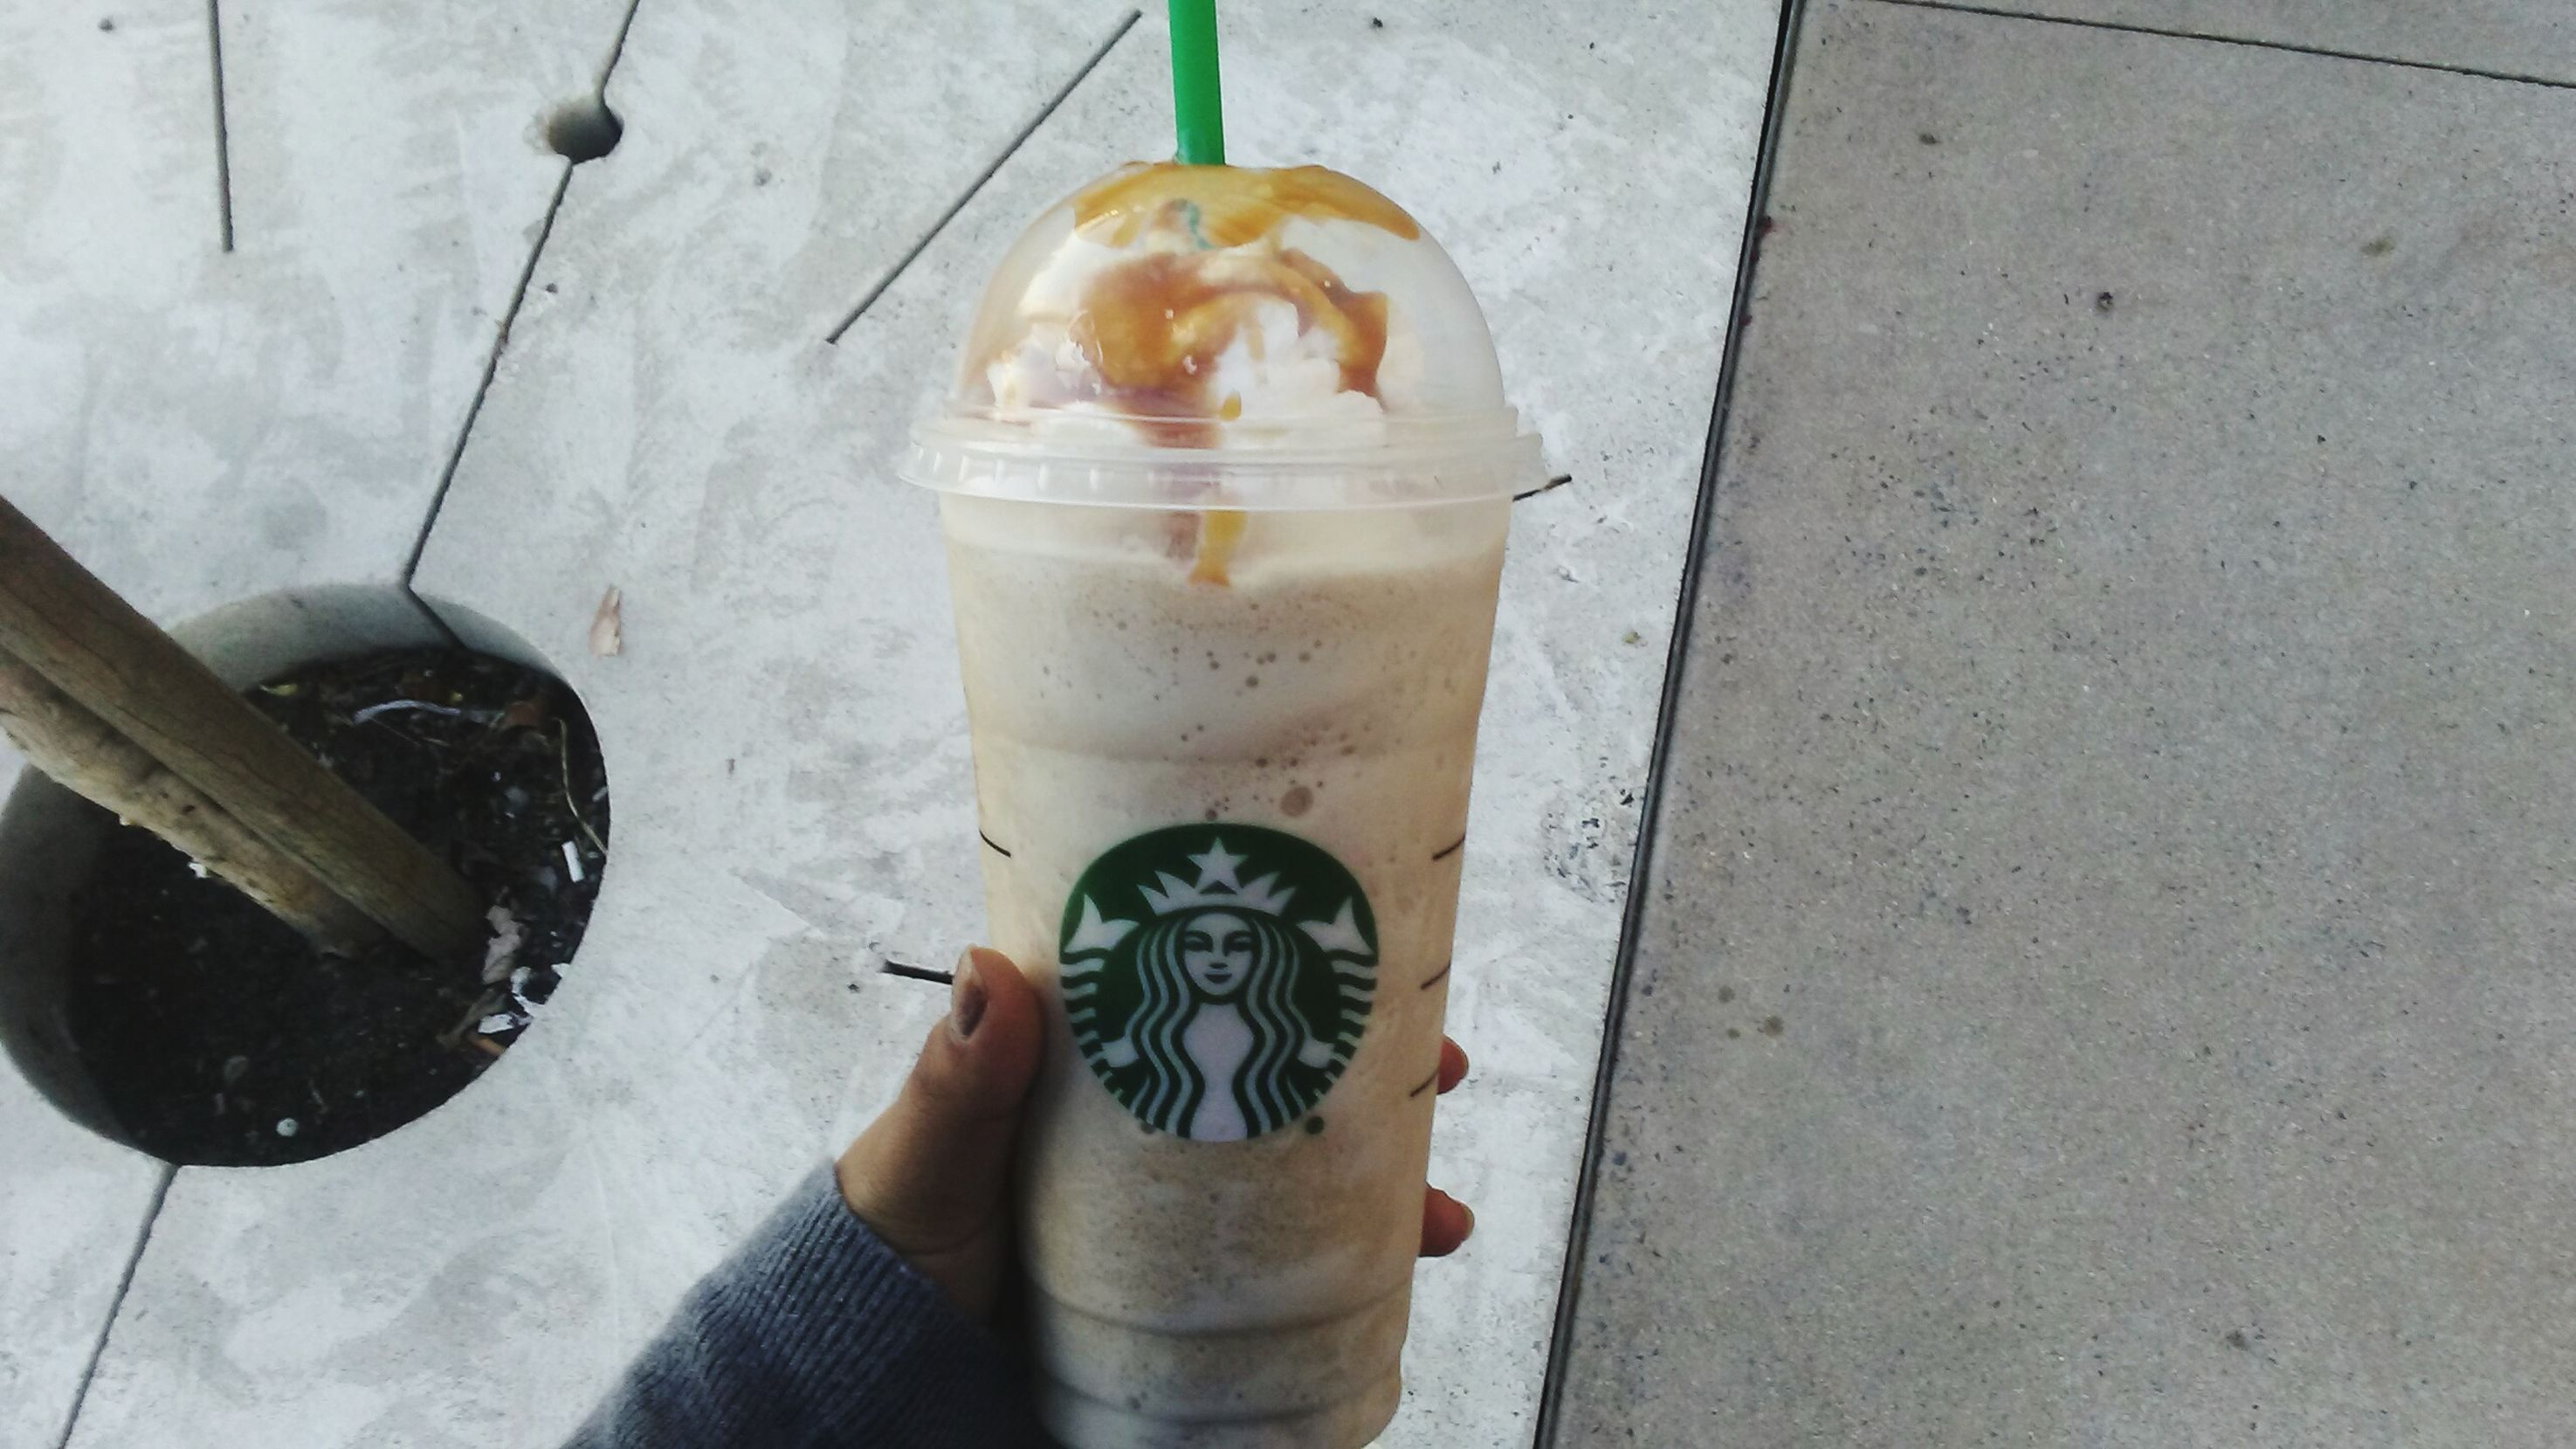 Frappuccino Caramel Frappe Coffee Time Coffee ☕ Ice Coffee Starbucks The Best Coffe Ever Street Street Photography Tree Taking Photos Hanging Out Check This Out Hello World Relaxing Enjoying Life Love ♥ First Eyeem Photo Photographer ❤ Photography Enjoying Life Villanueva'sphoto Taking Photos